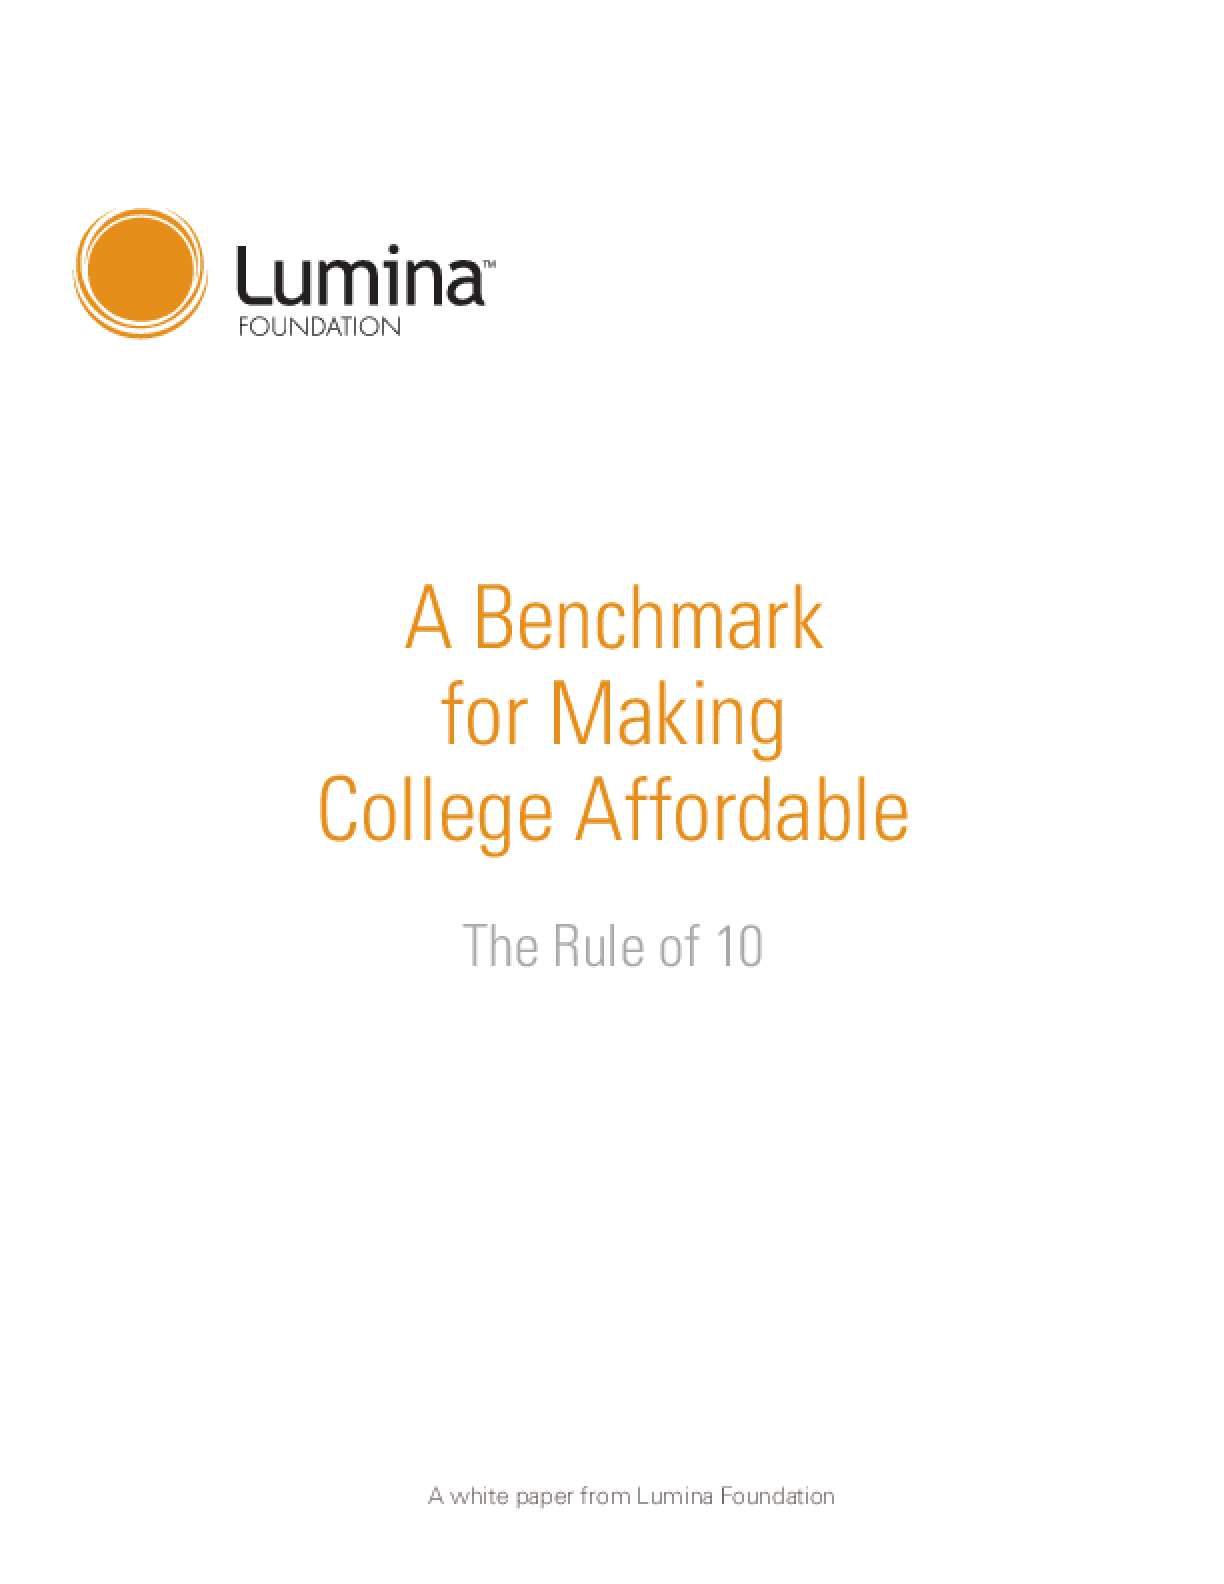 A Benchmark for Making College Affordable